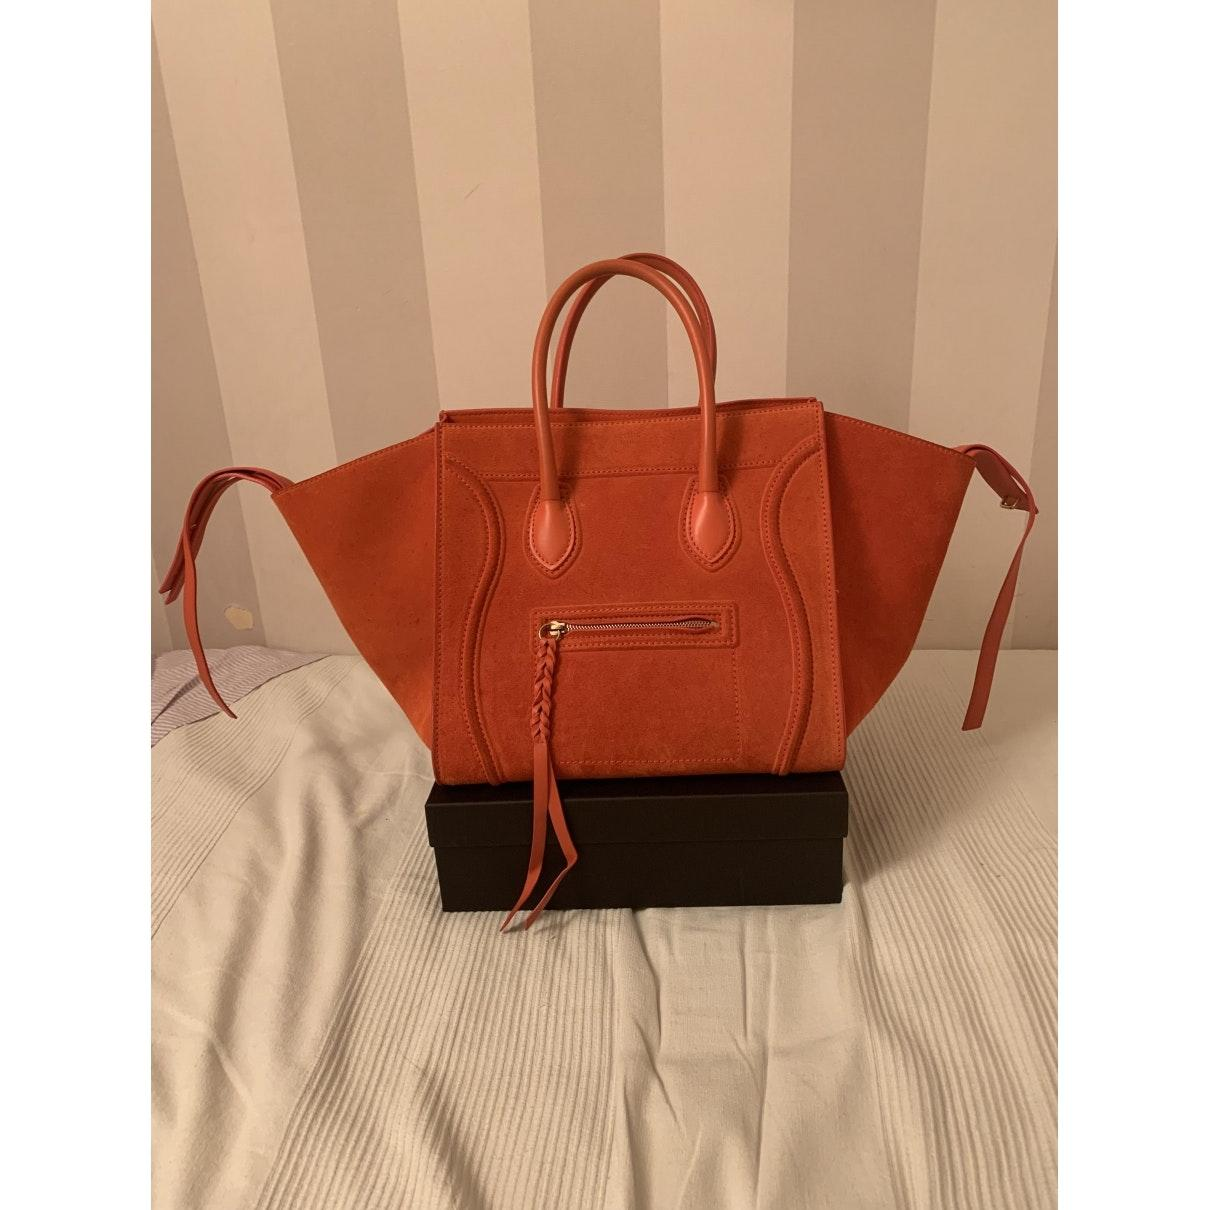 Sac à main Luggage Phantom en Suede Orange Celine qoFo